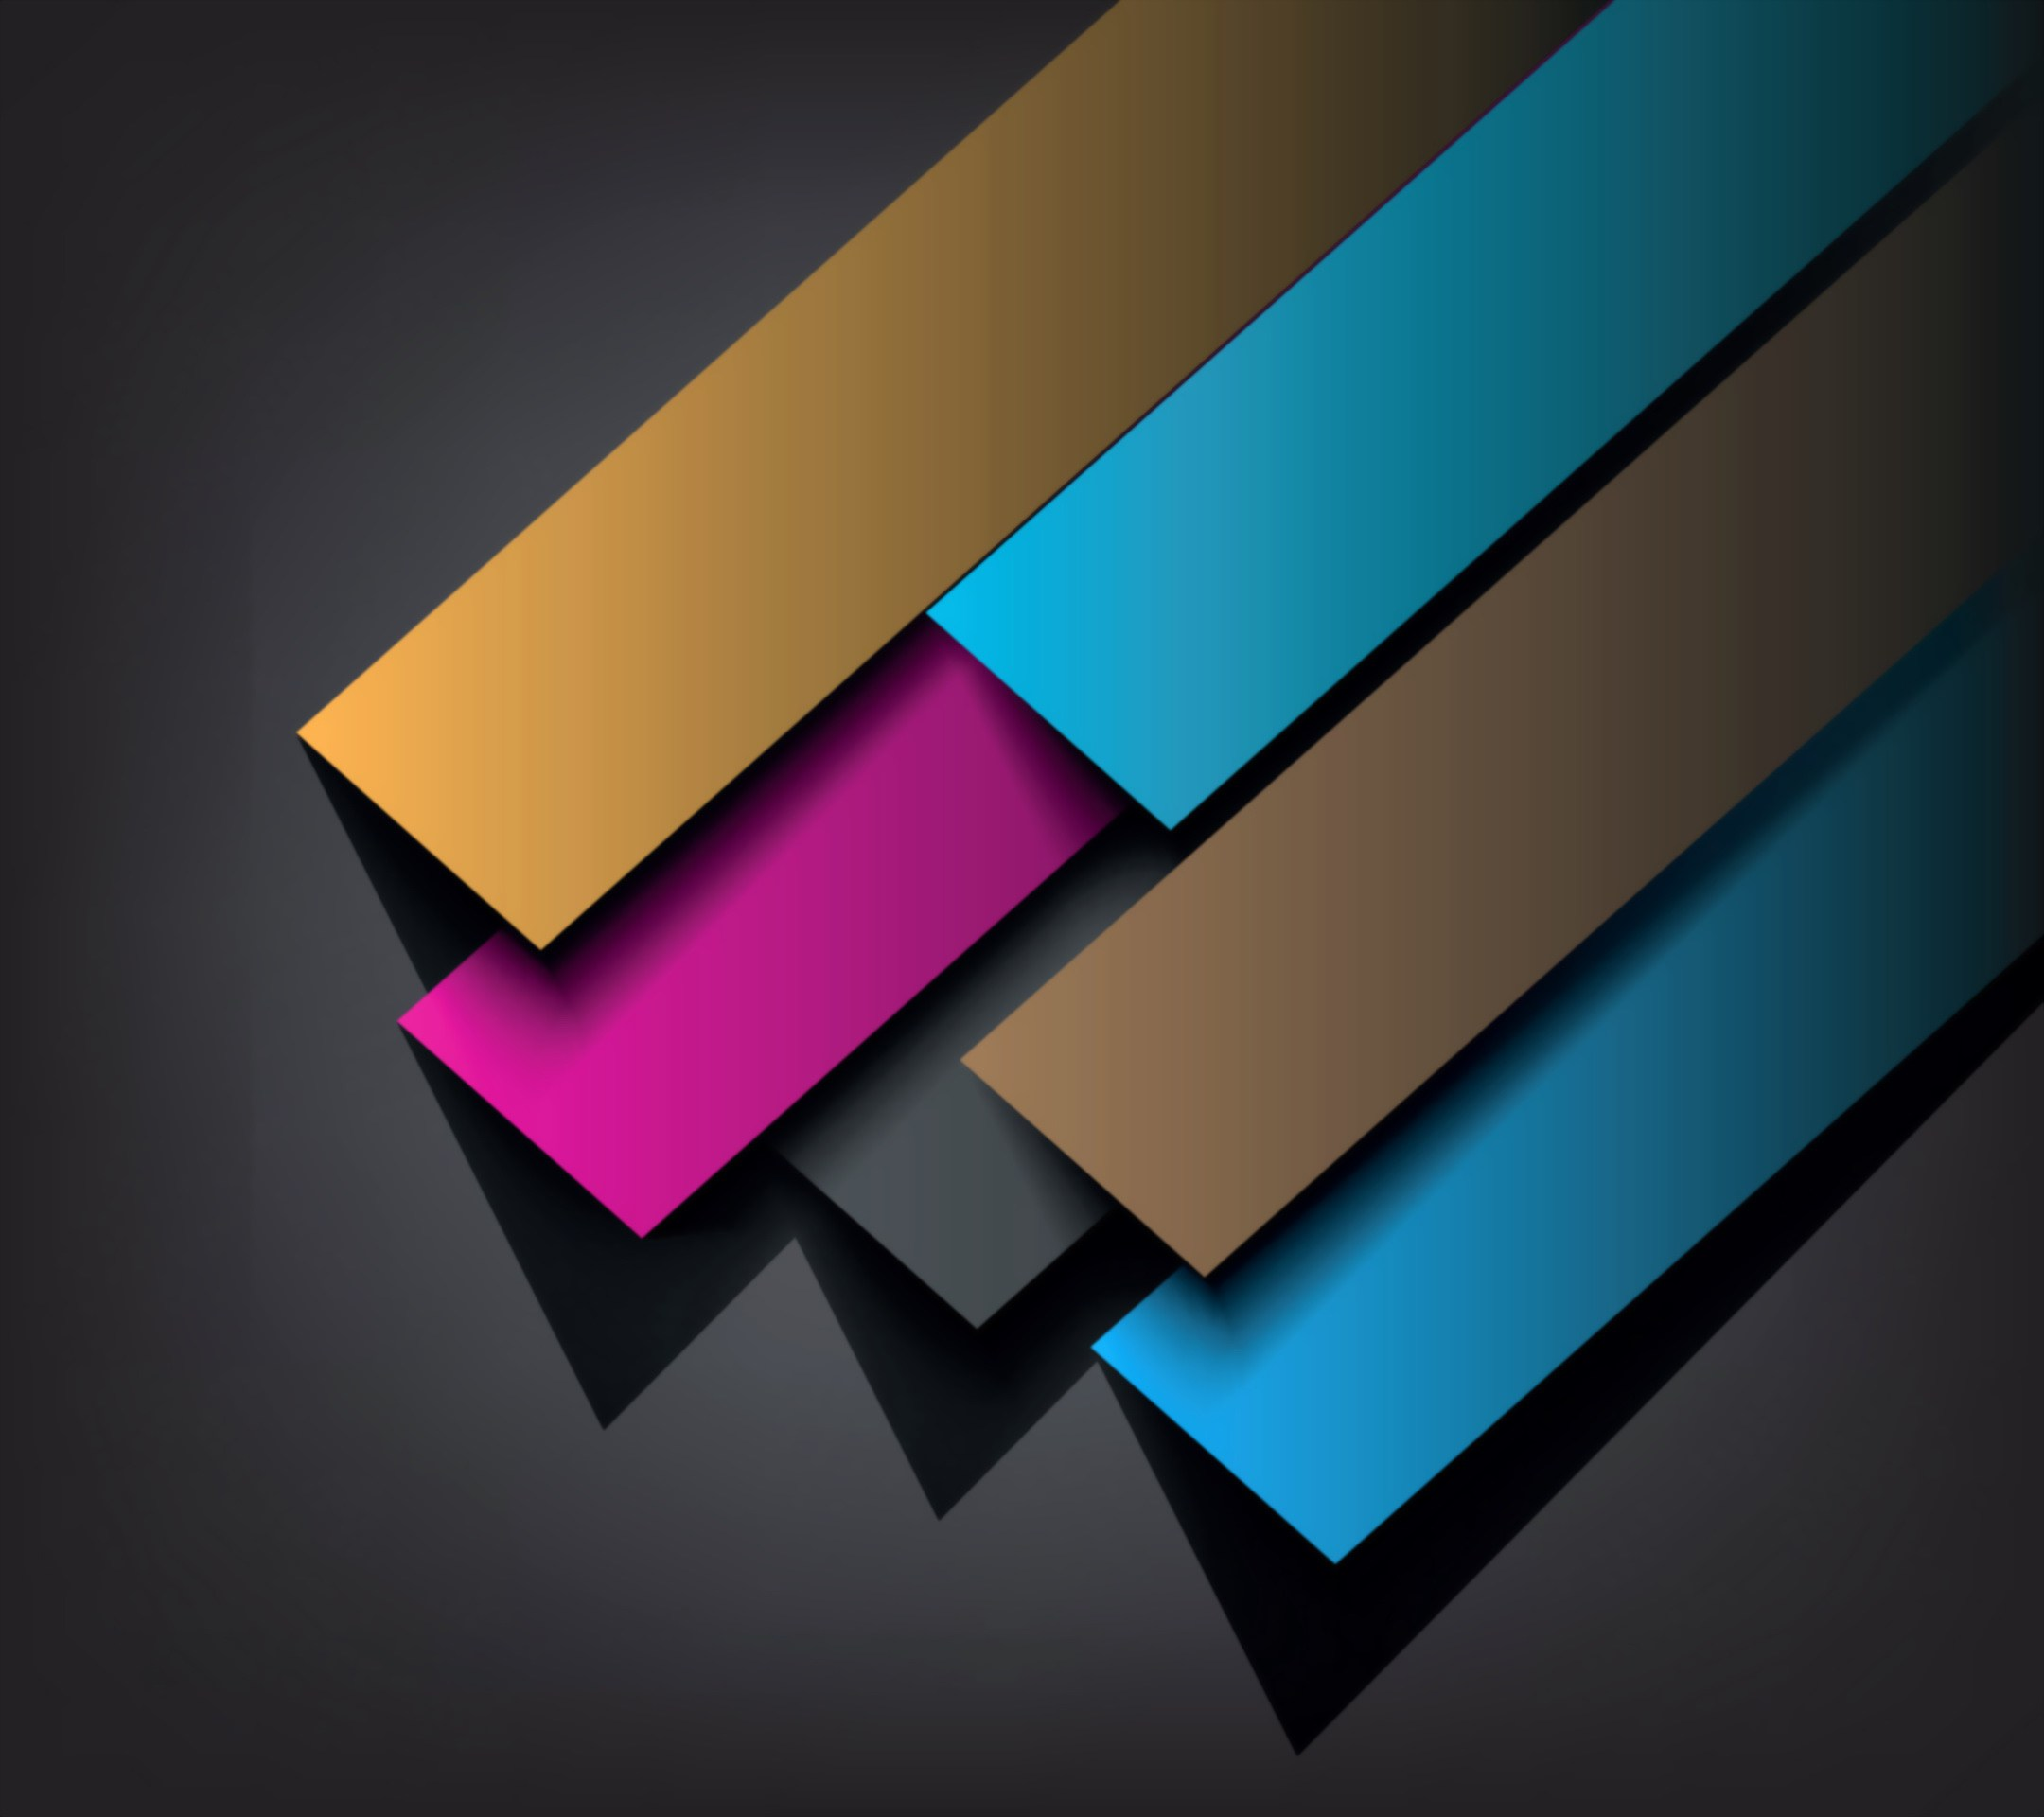 Shapes HD Wallpaper   Top 10 Abstract Google Nexus 10 HD Wallpapers 2160x1920